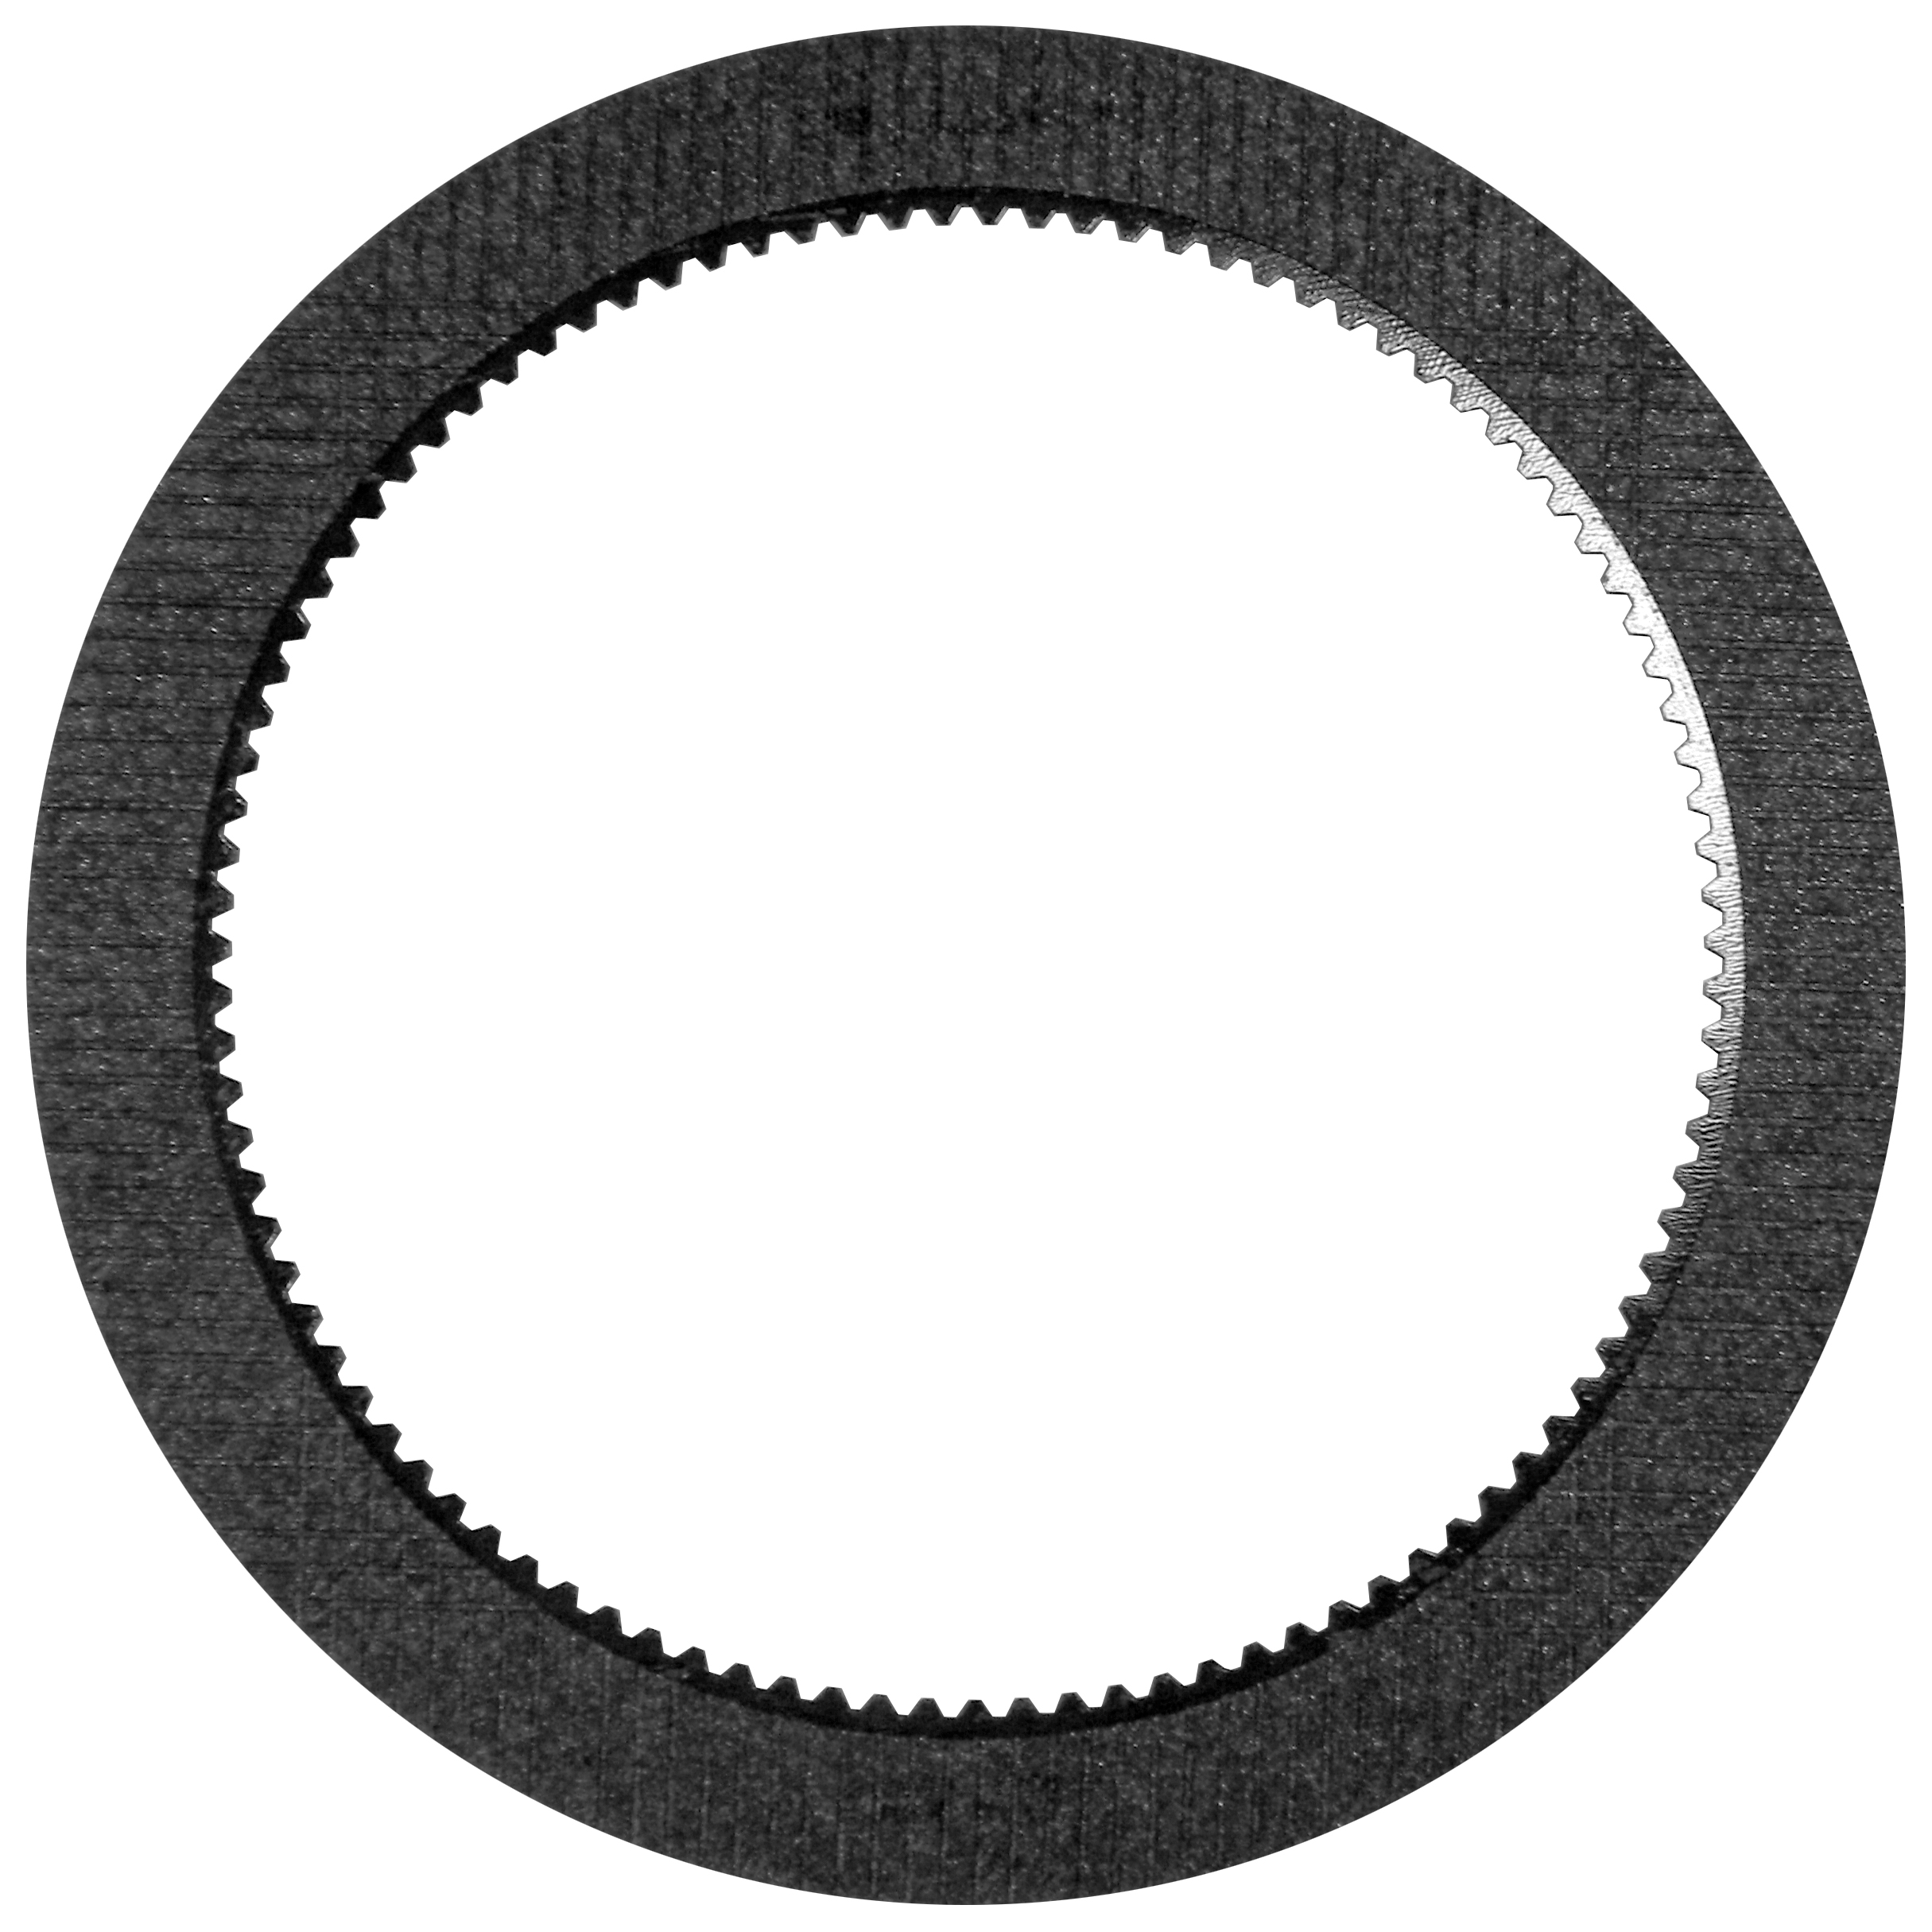 R810930 | 1995-ON Friction Clutch Plate Graphitic C2 Graphitic